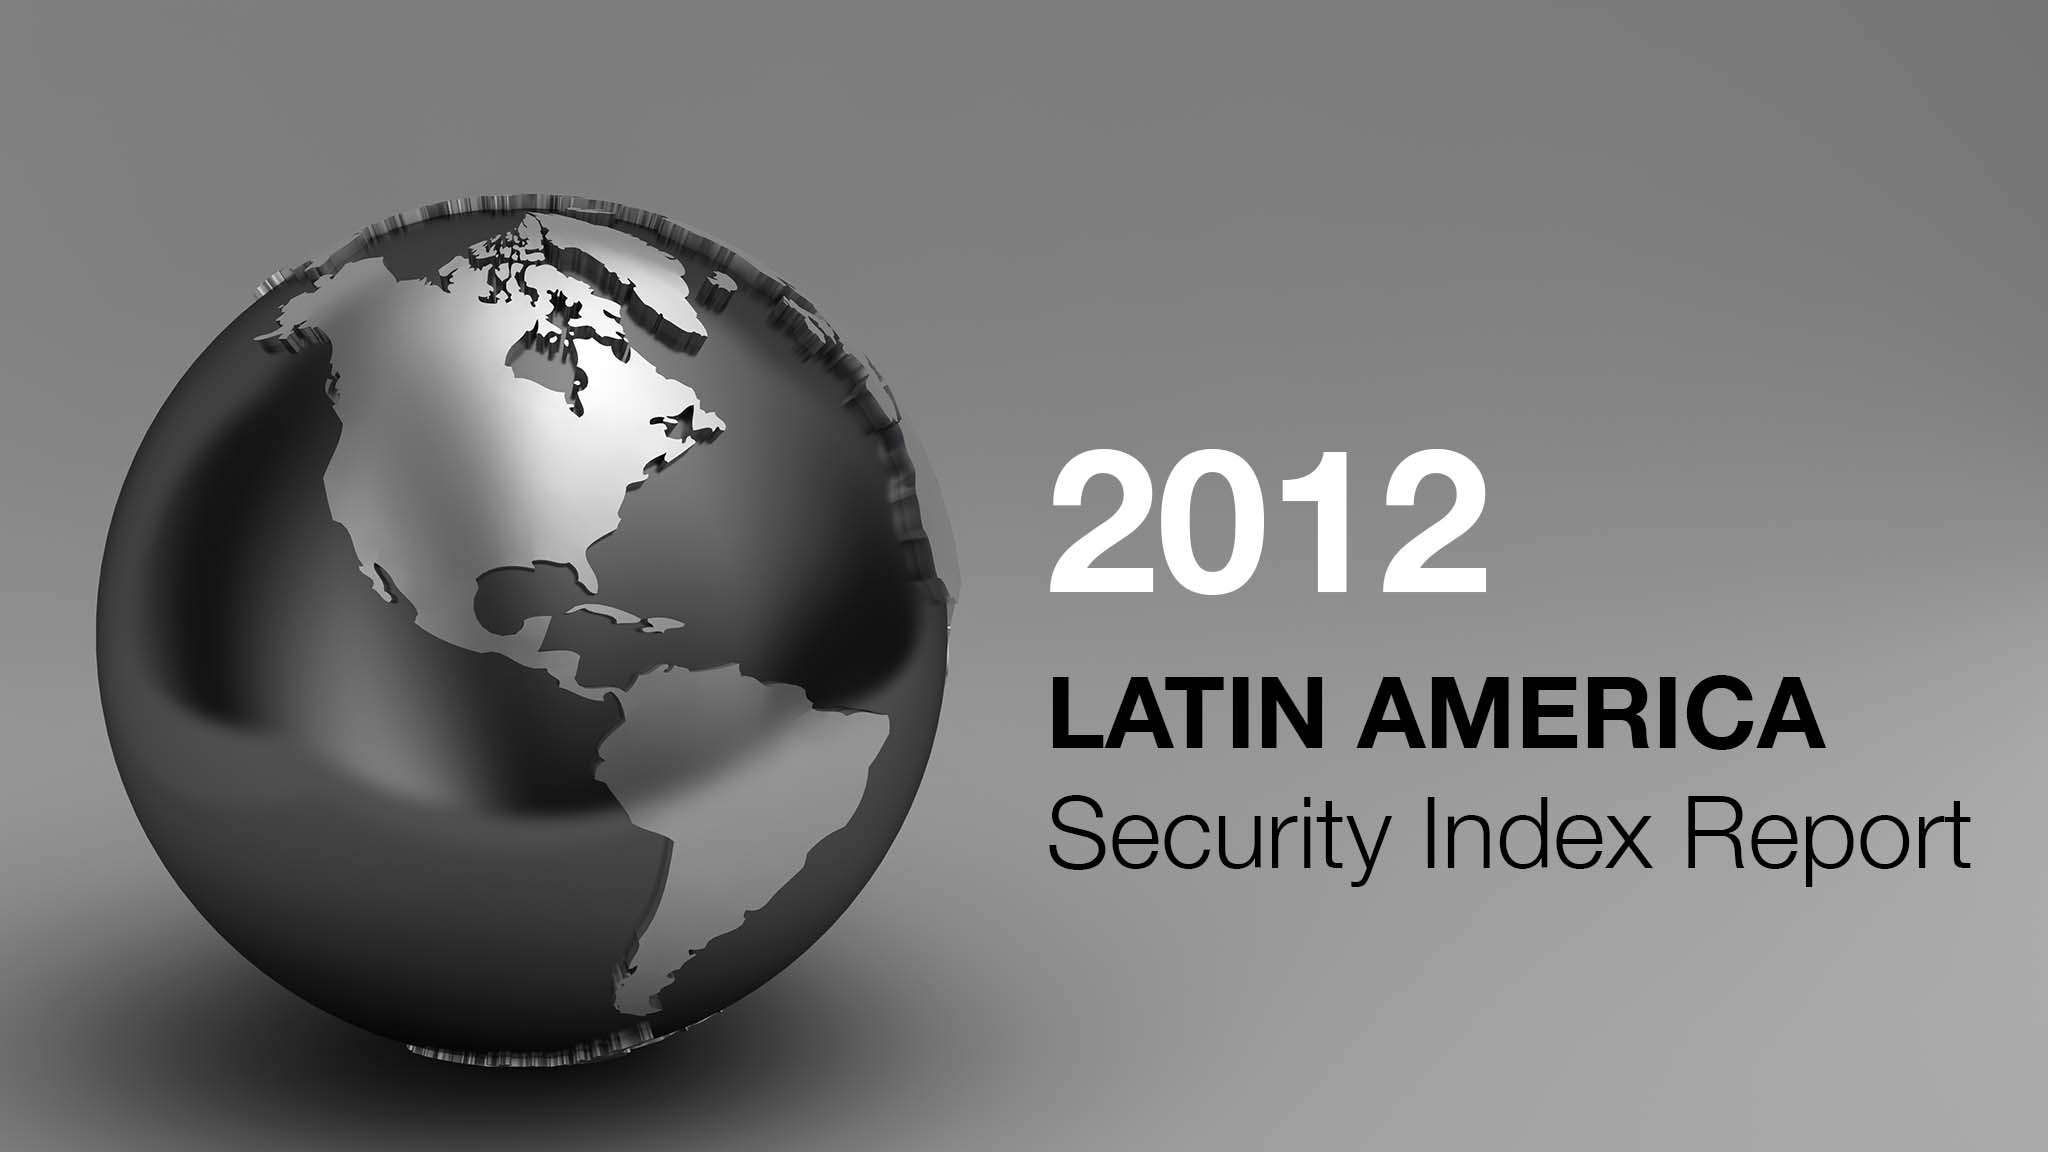 Frank Holder 2012 Latin America Security Index Report